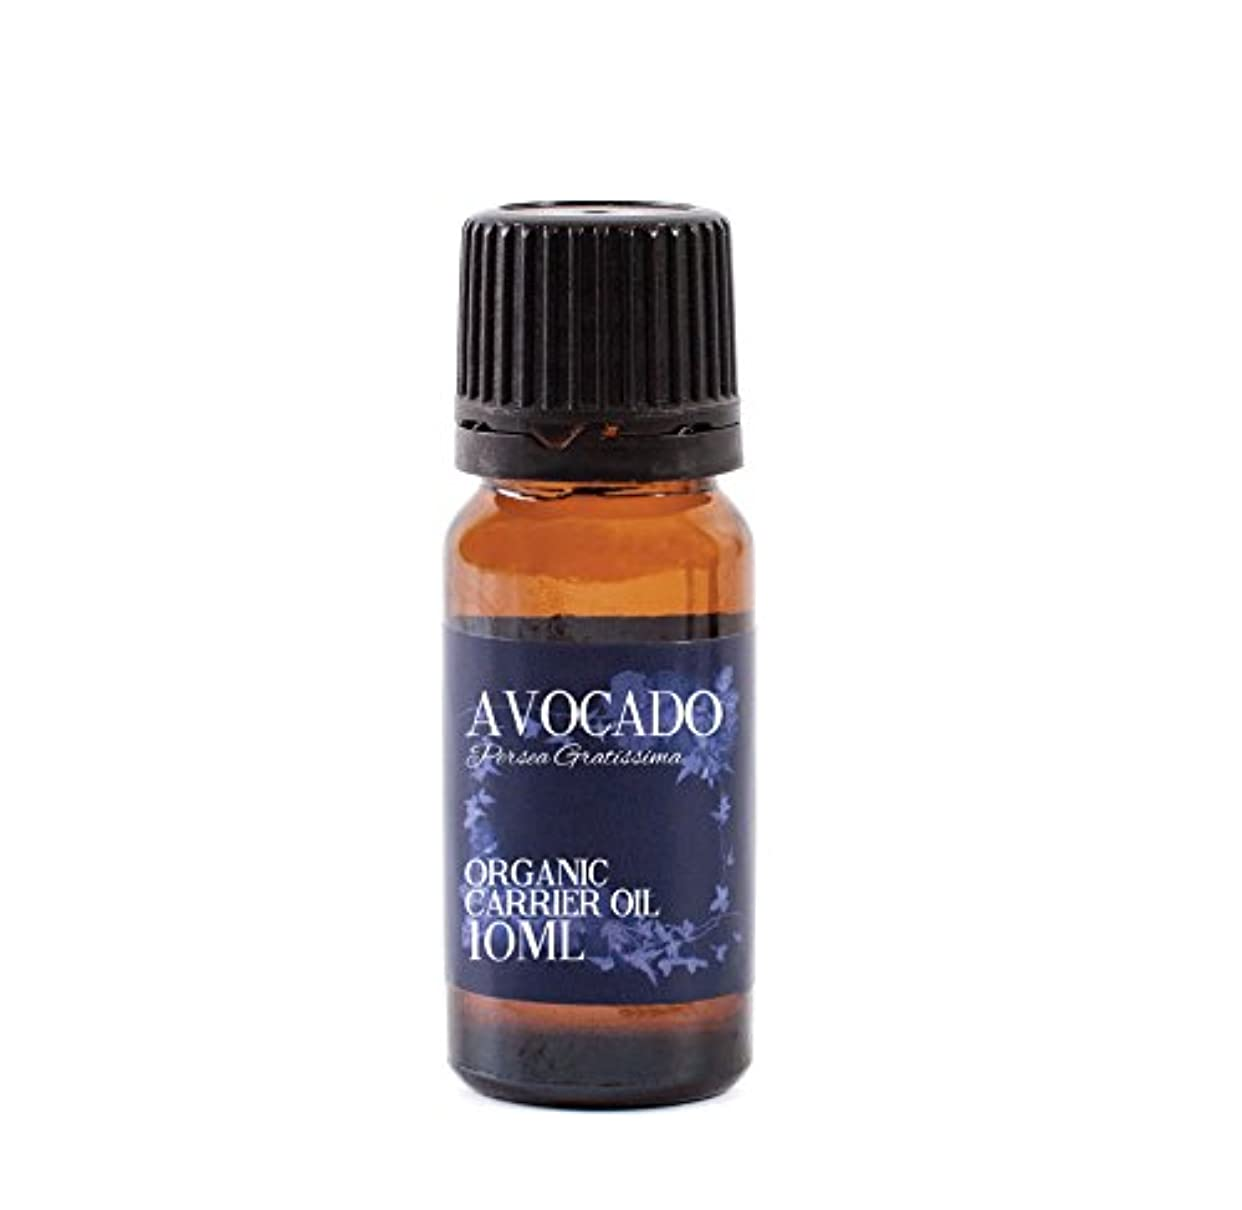 Mystic Moments   Avocado Organic Carrier Oil - 10ml - 100% Pure